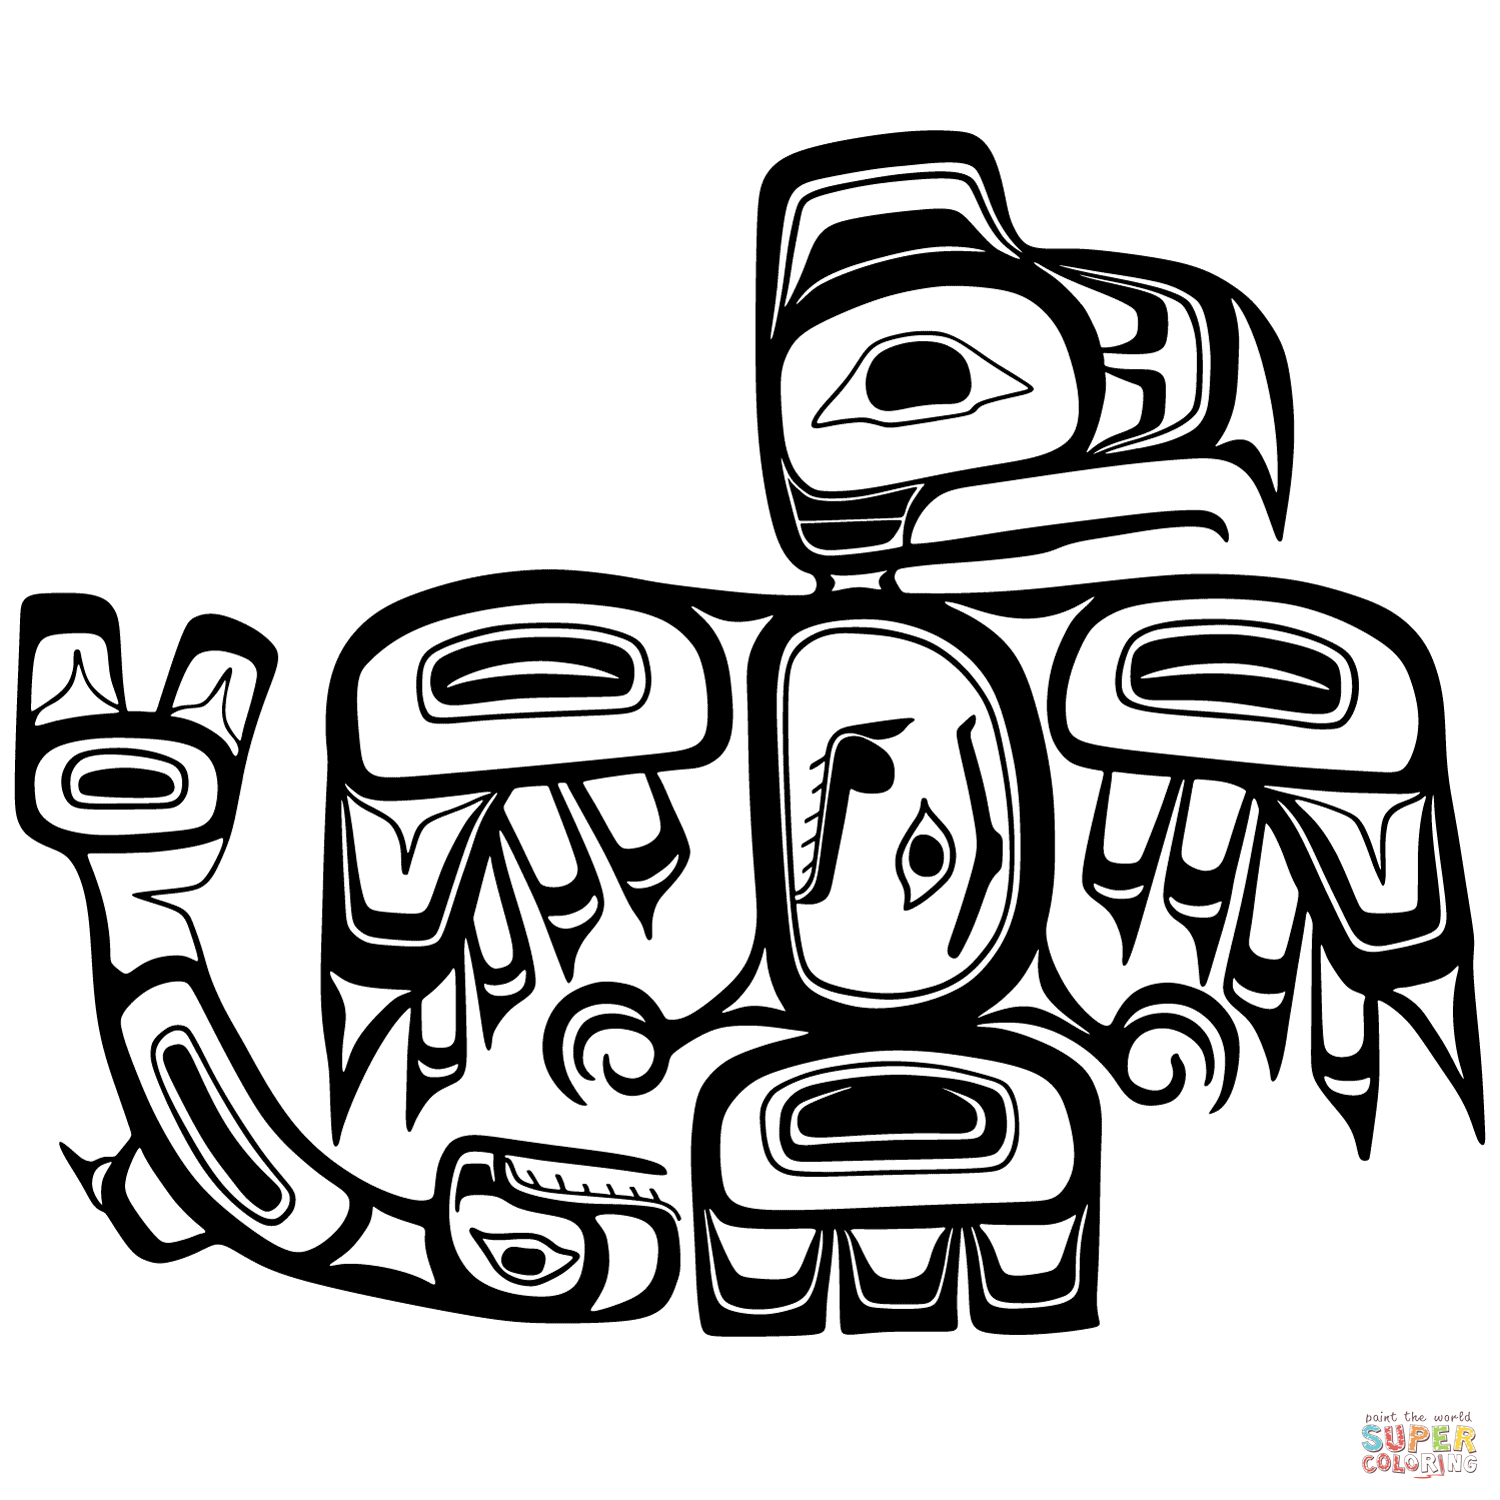 Canadian Aboriginal Art Coloring Pages | Free Coloring Pages - Free Printable Aboriginal Colouring Pages